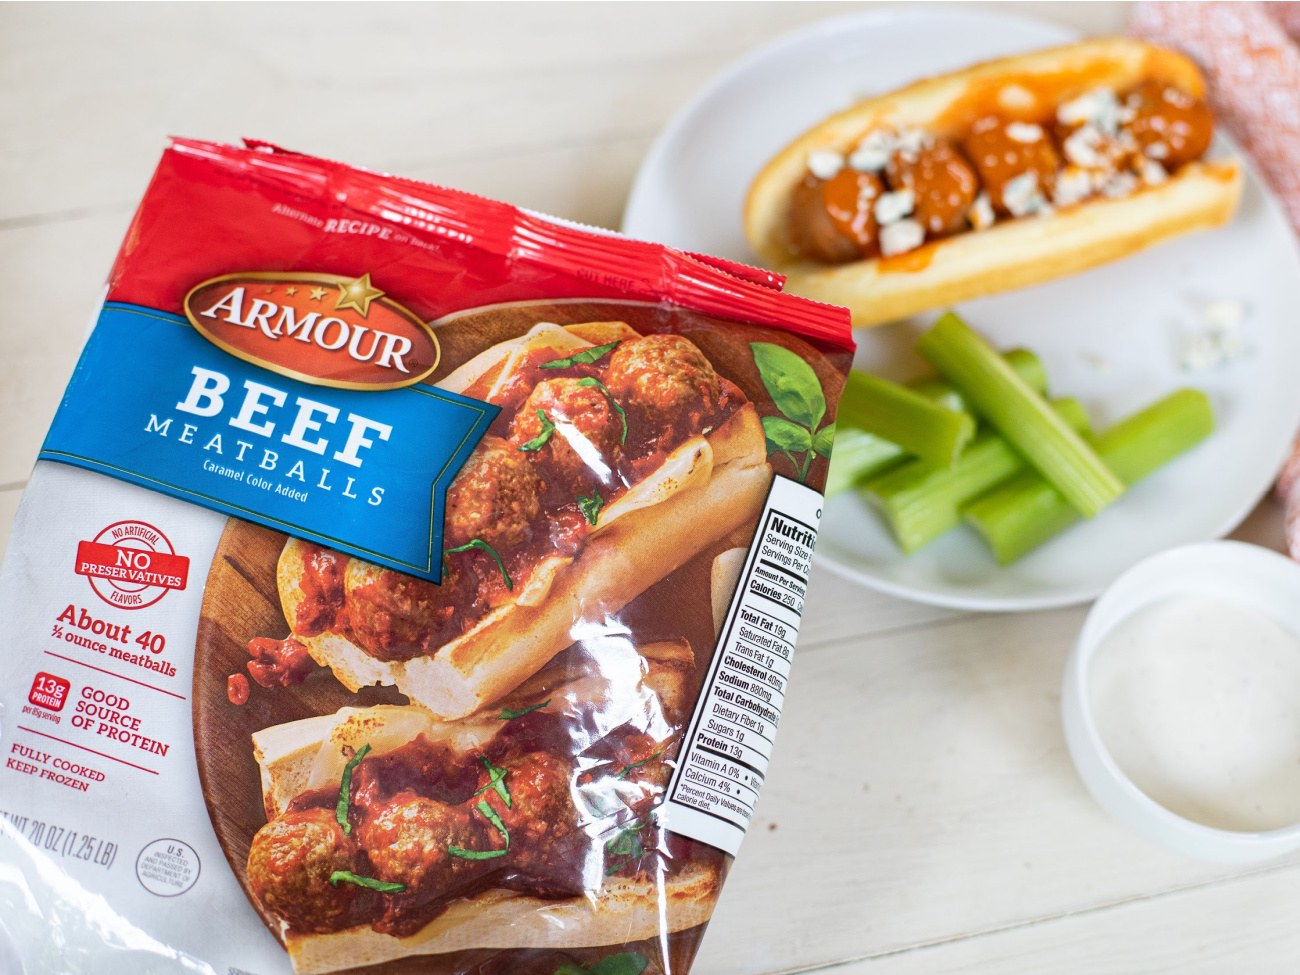 Still Time To Save On Armour Meatballs At Publix - Load Your Coupon & Save on I Heart Publix